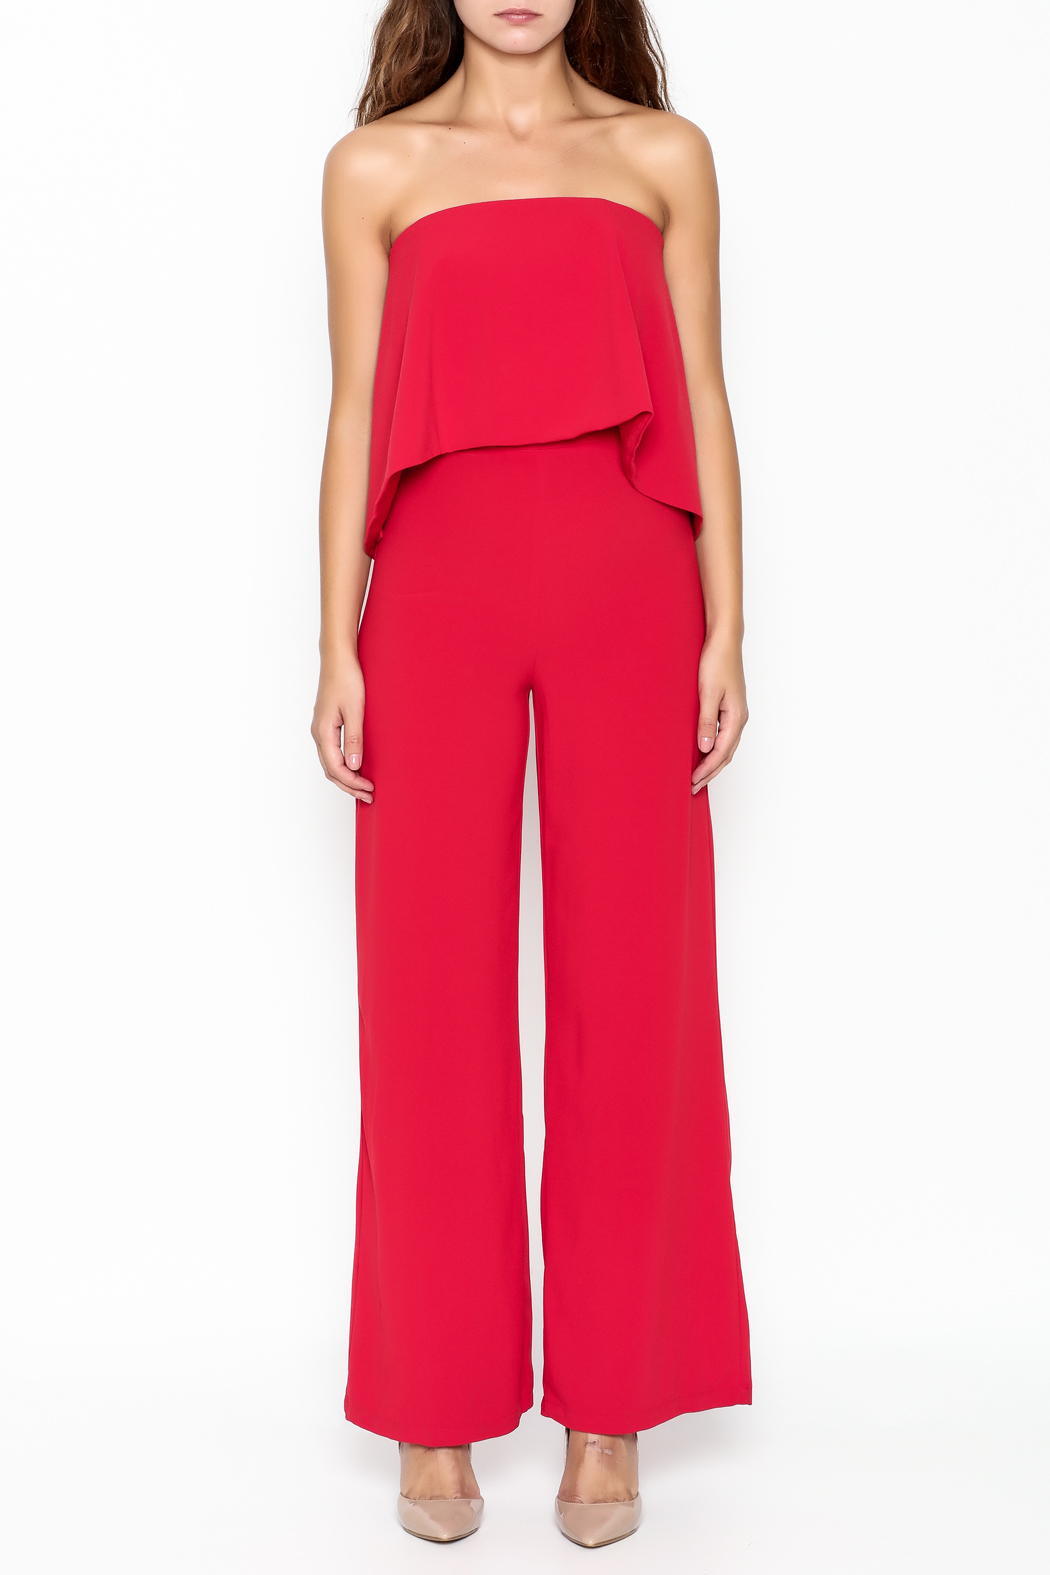 Do-Be Ruffle Strapless Jumpsuit - Front Full Image